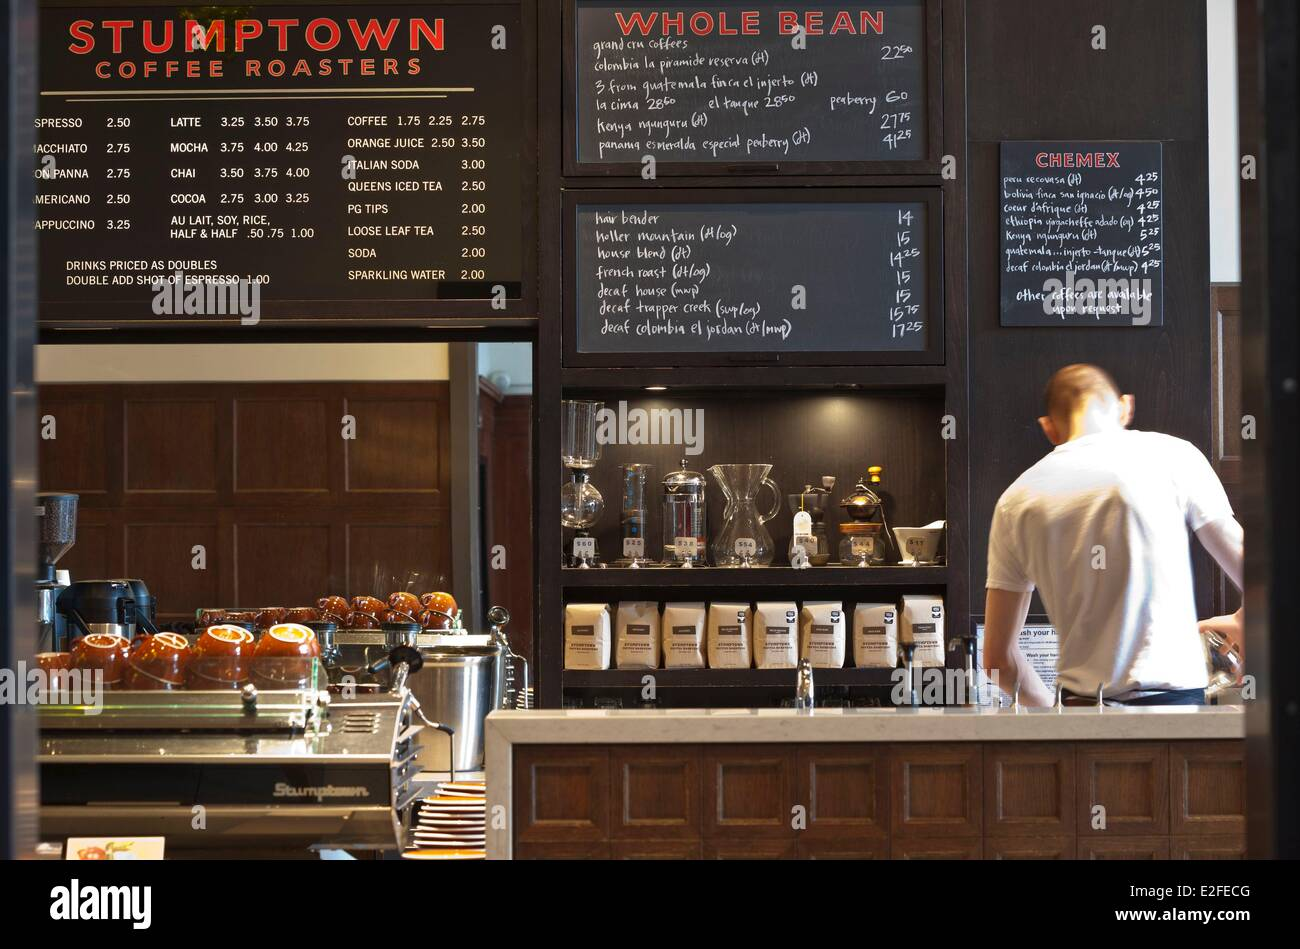 United States, Oregon, Portland, SW Stark Street, Stumptown Coffee Roasters cafe, brand founded locally in 1999 - Stock Image